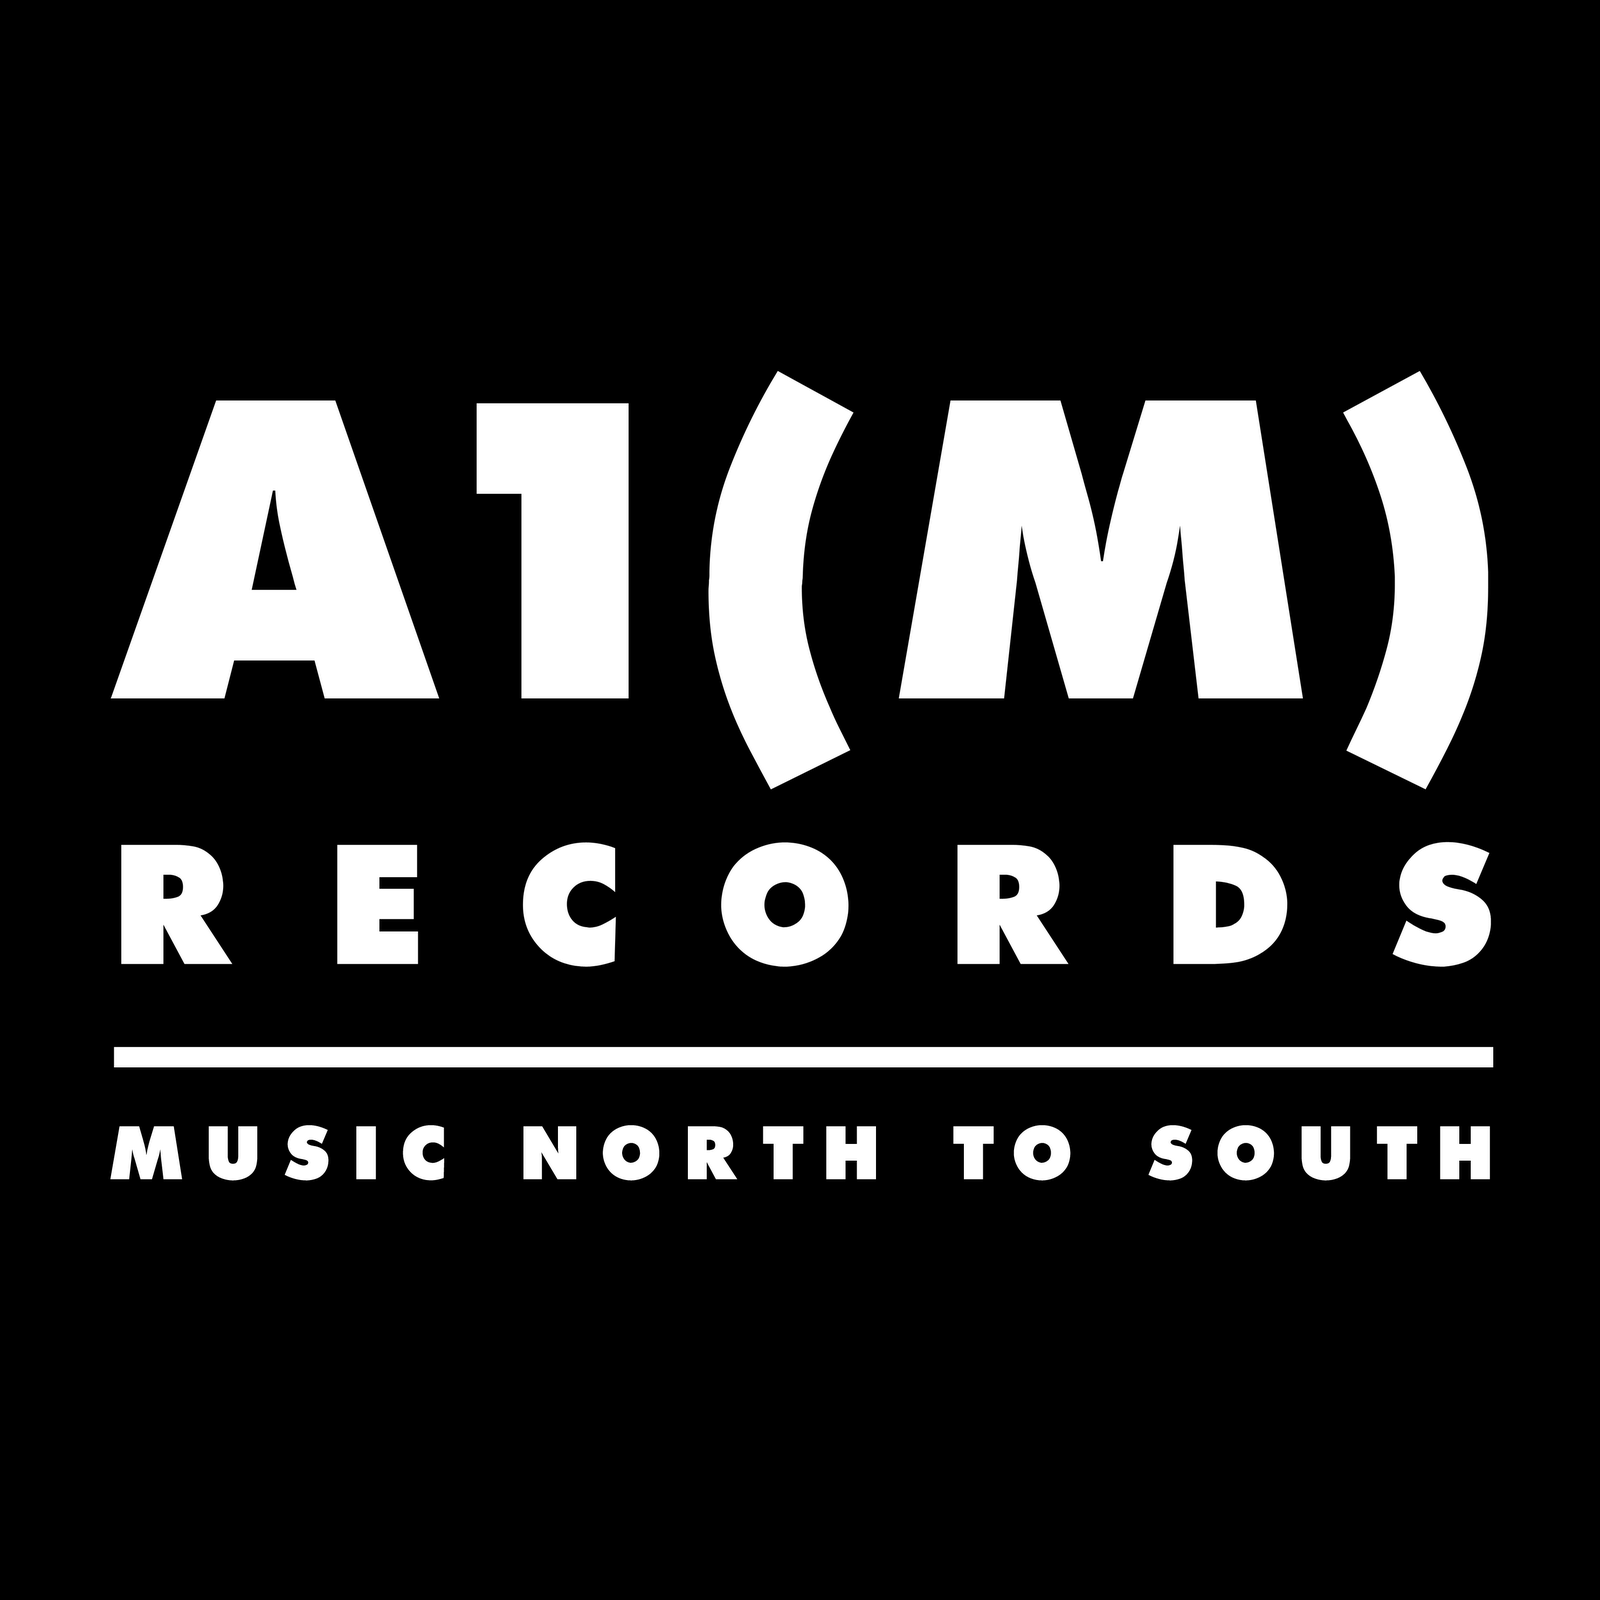 Music Makes A Difference: NEW RECORD LABEL LAUNCHED - A1 (M) RECORDS